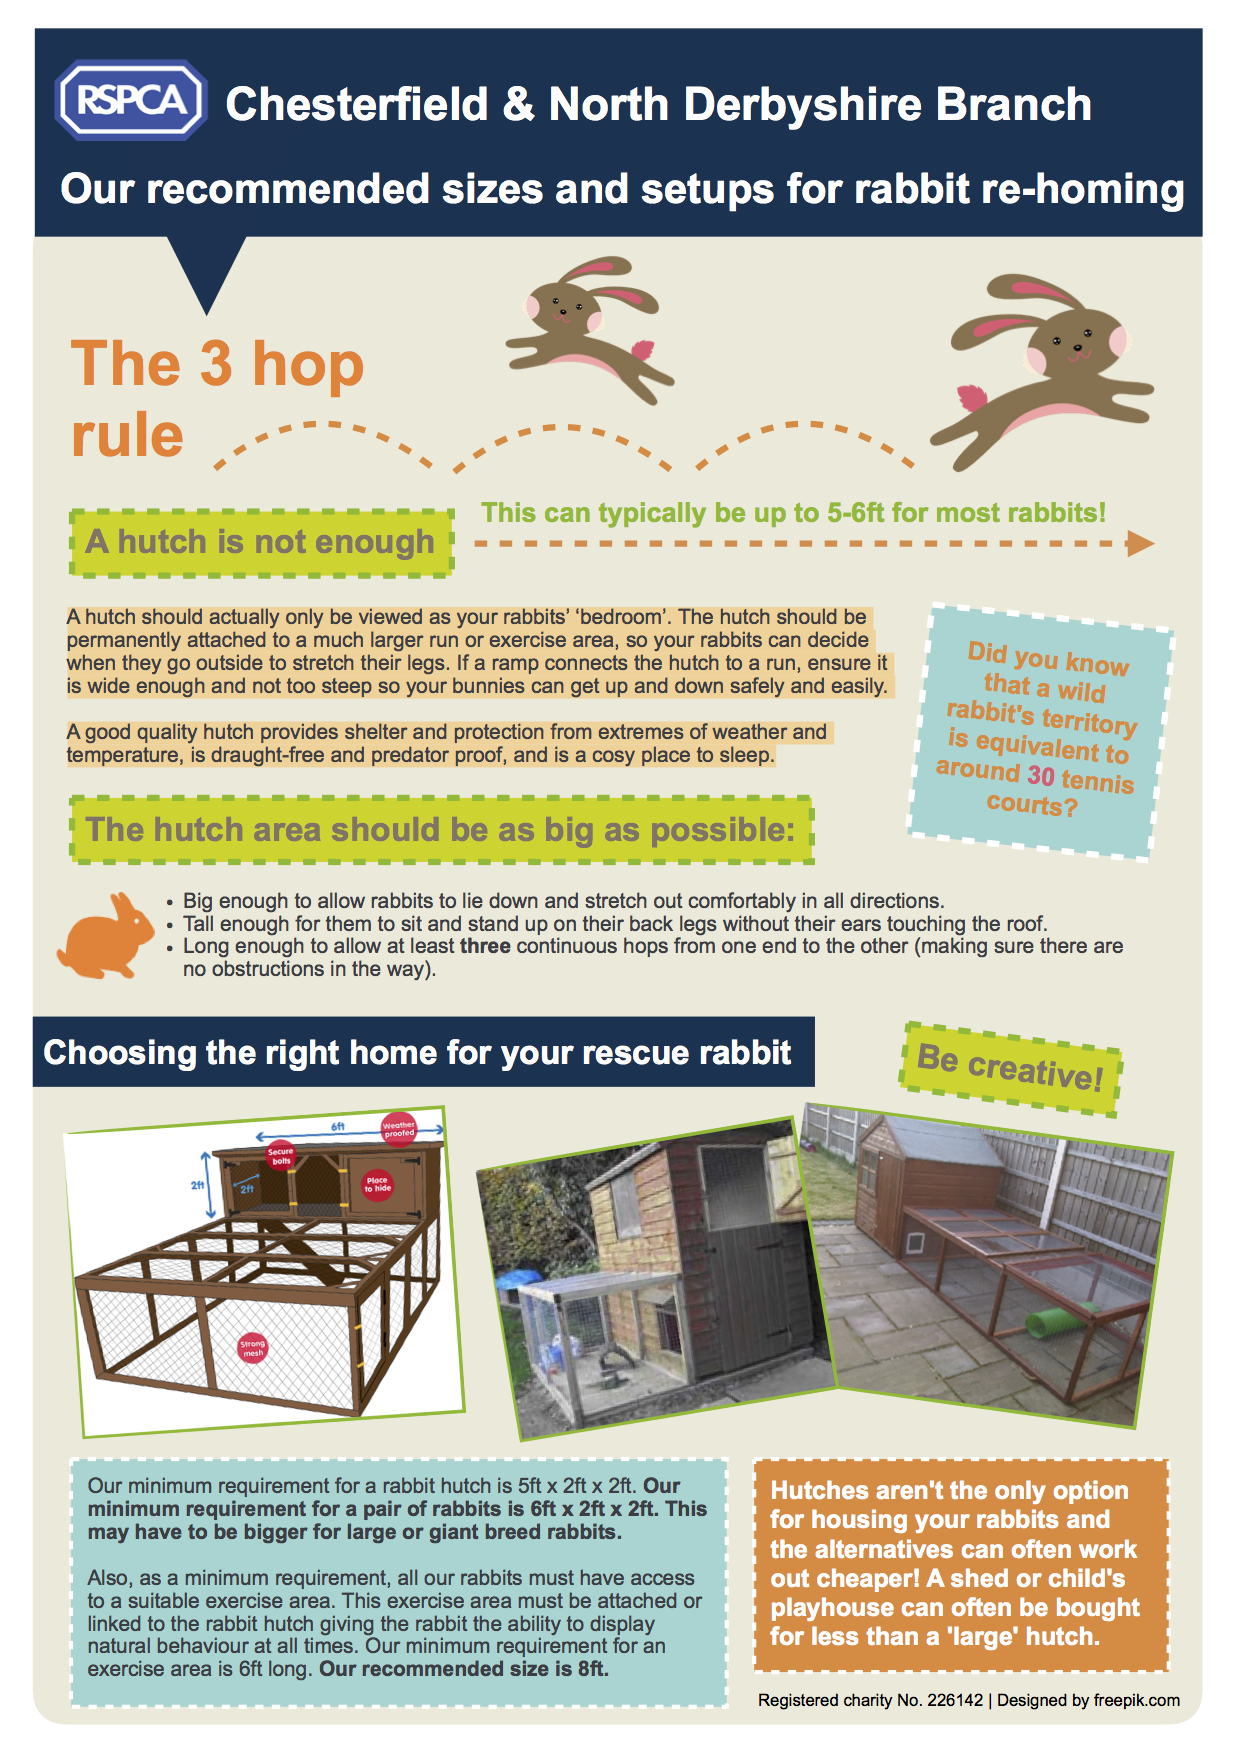 Our recommended sizes and setups for rabbit re-homing